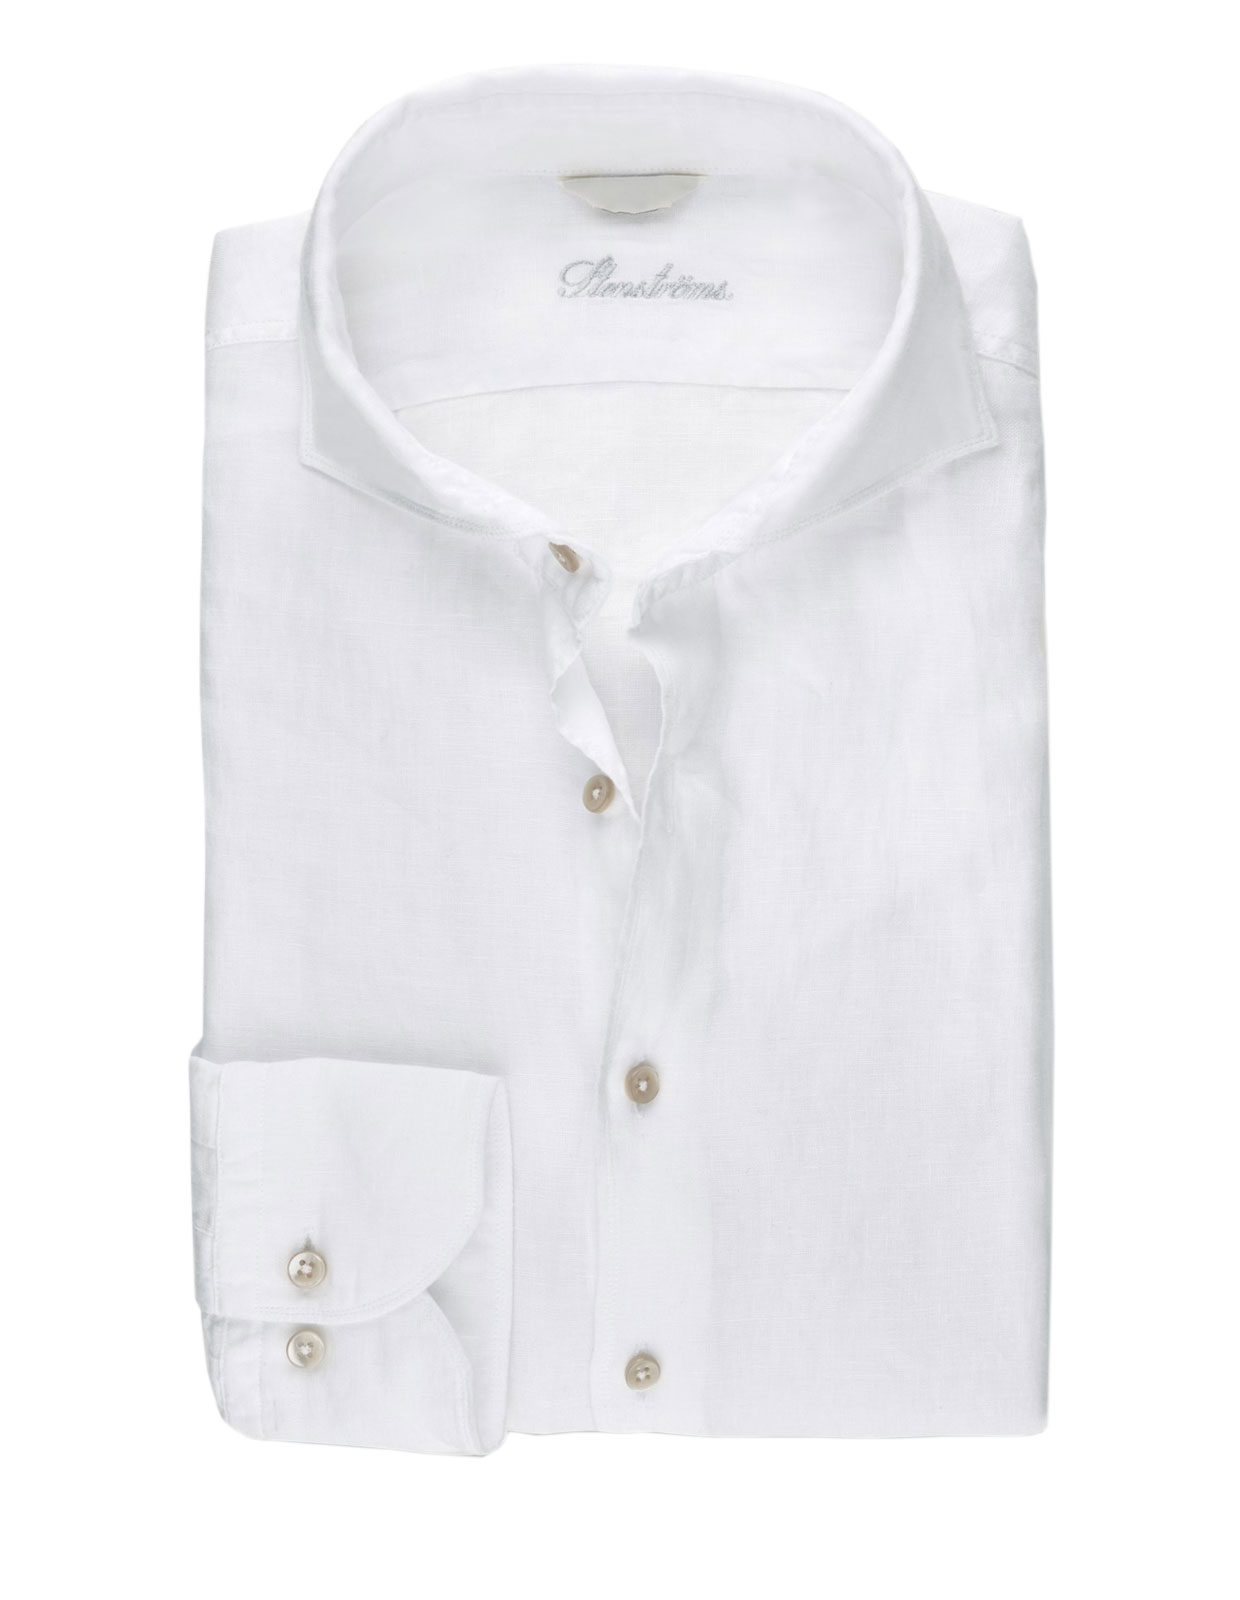 Fitted Body Linen Shirt White